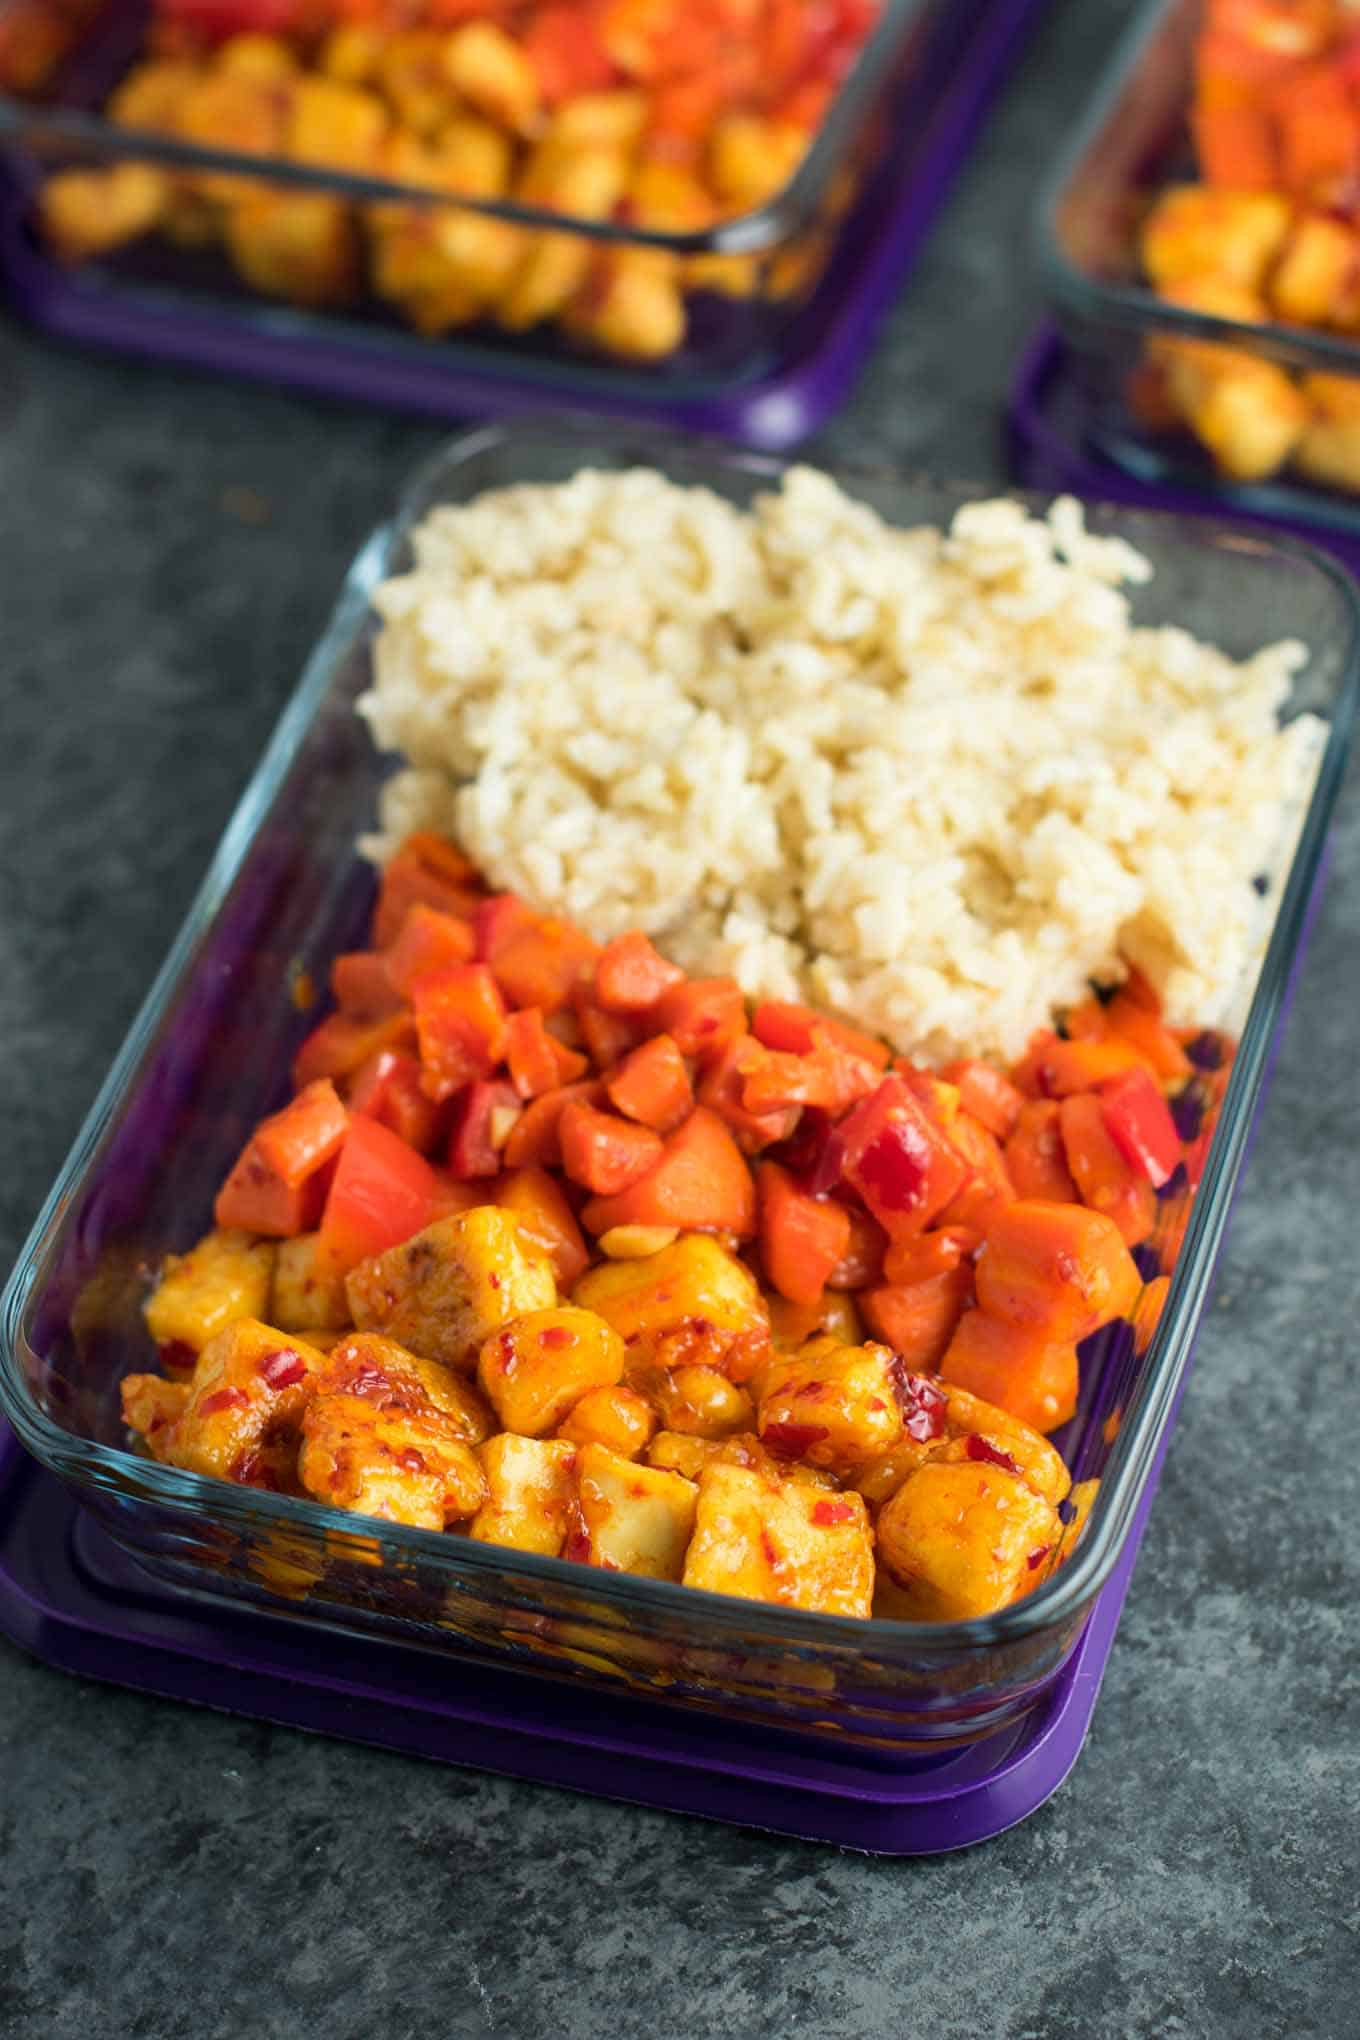 Meal Prep Sweet Chili Tofu Bowls with brown rice and vegetables. A delicious vegan or vegetarian meal! #vegan #vegetarian #veganmealprep #tofu